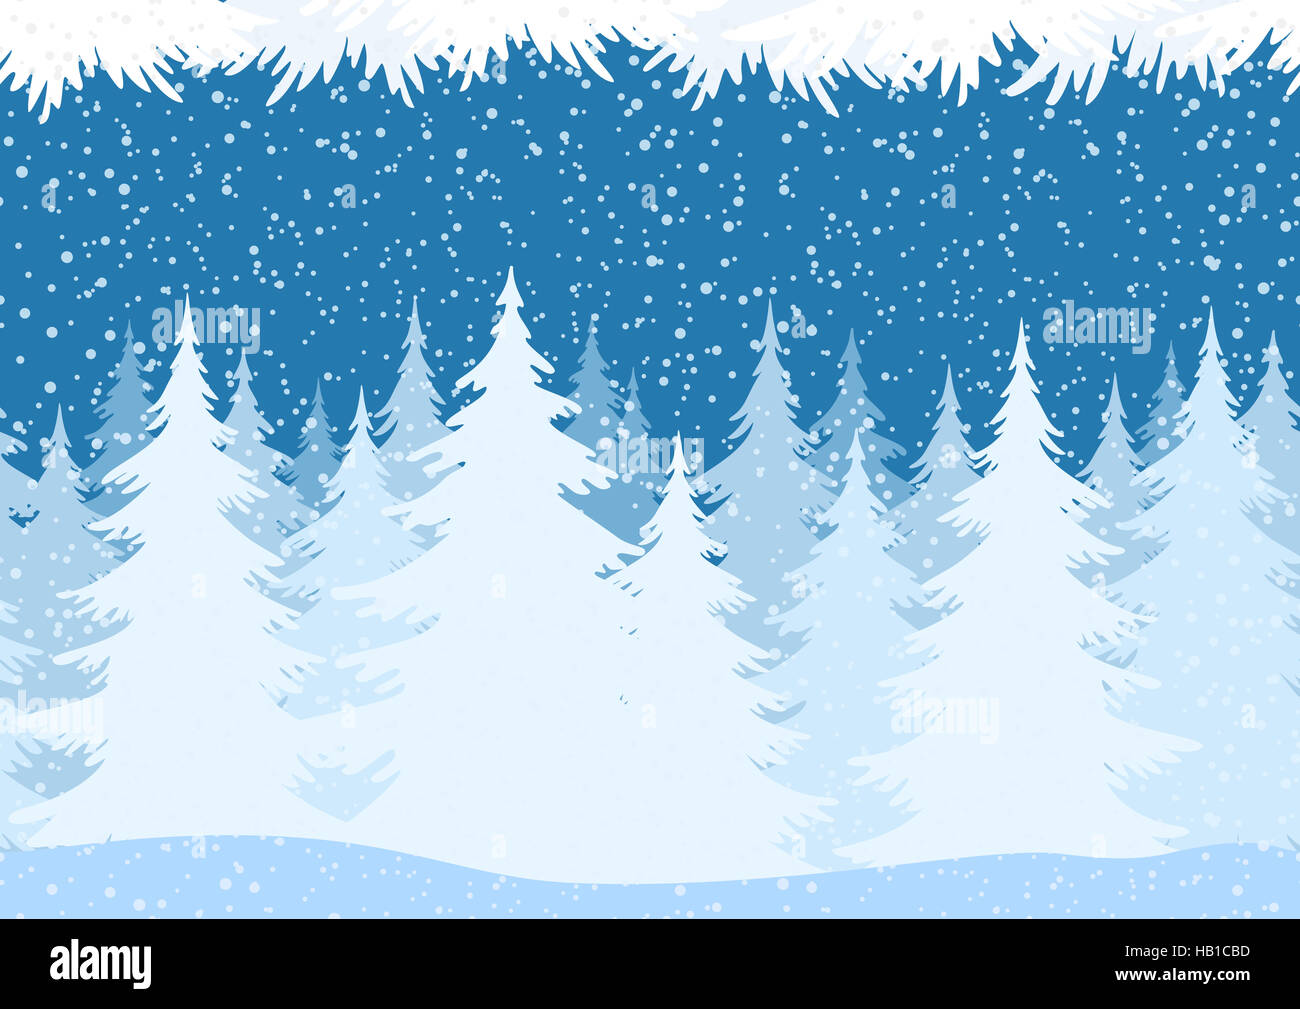 Seamless Christmas Forest Landscape - Stock Image